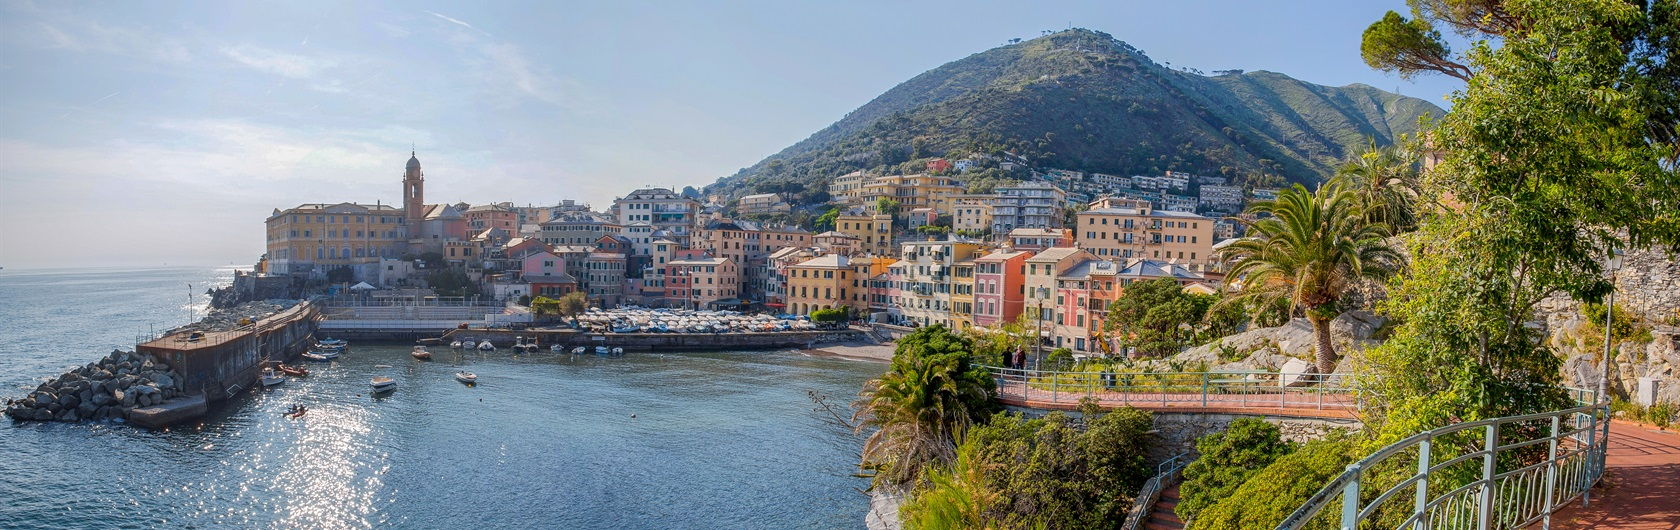 1. Northern Italy: Italian Riviera 1 and 2, a 15-day walk Genoa to Portovenere: Overview